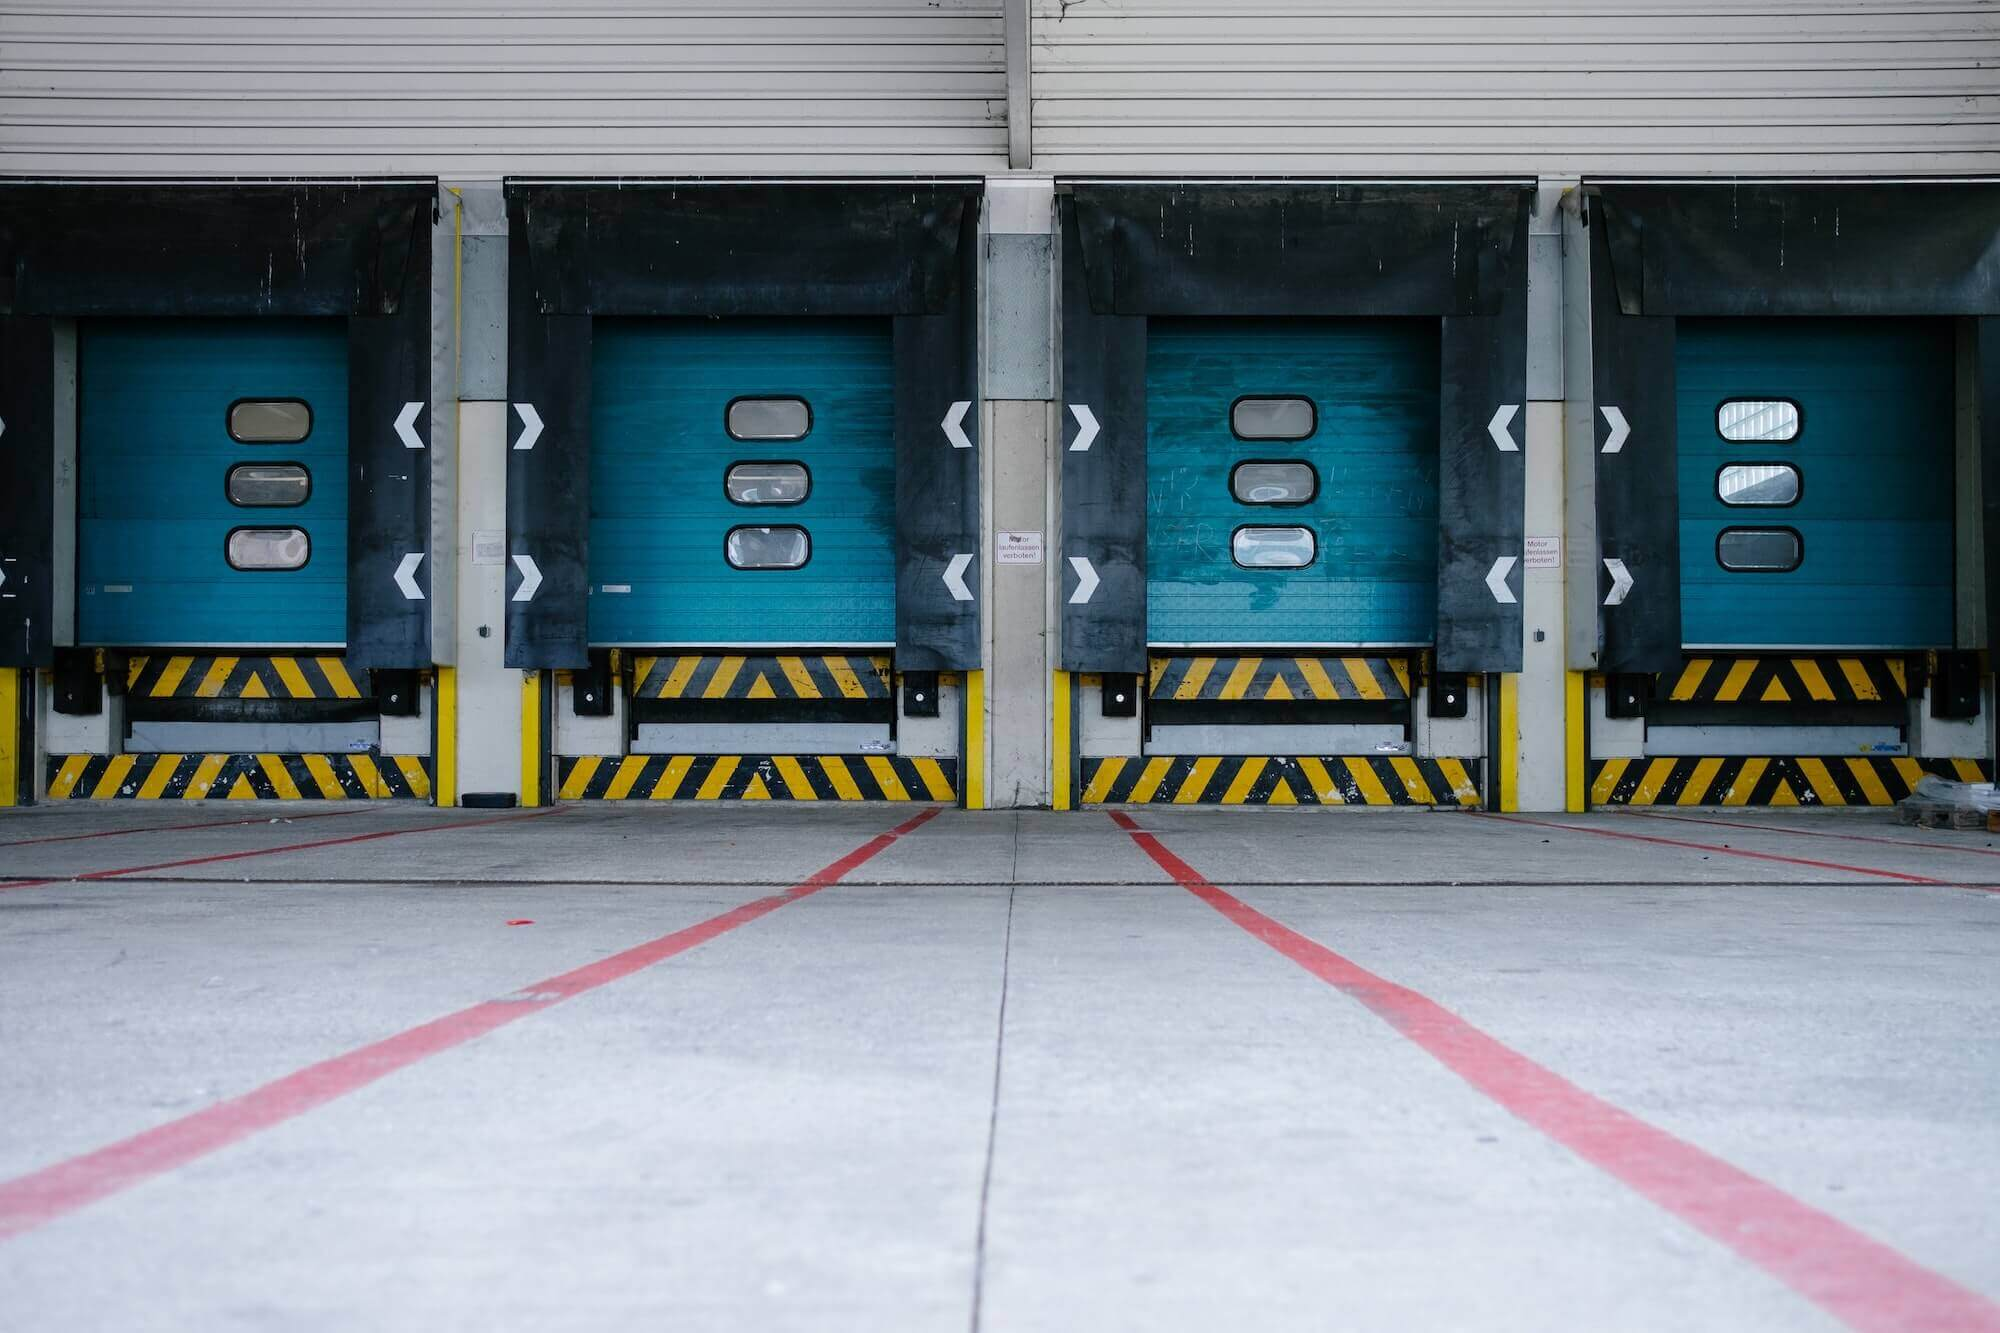 Warehouse loading bays